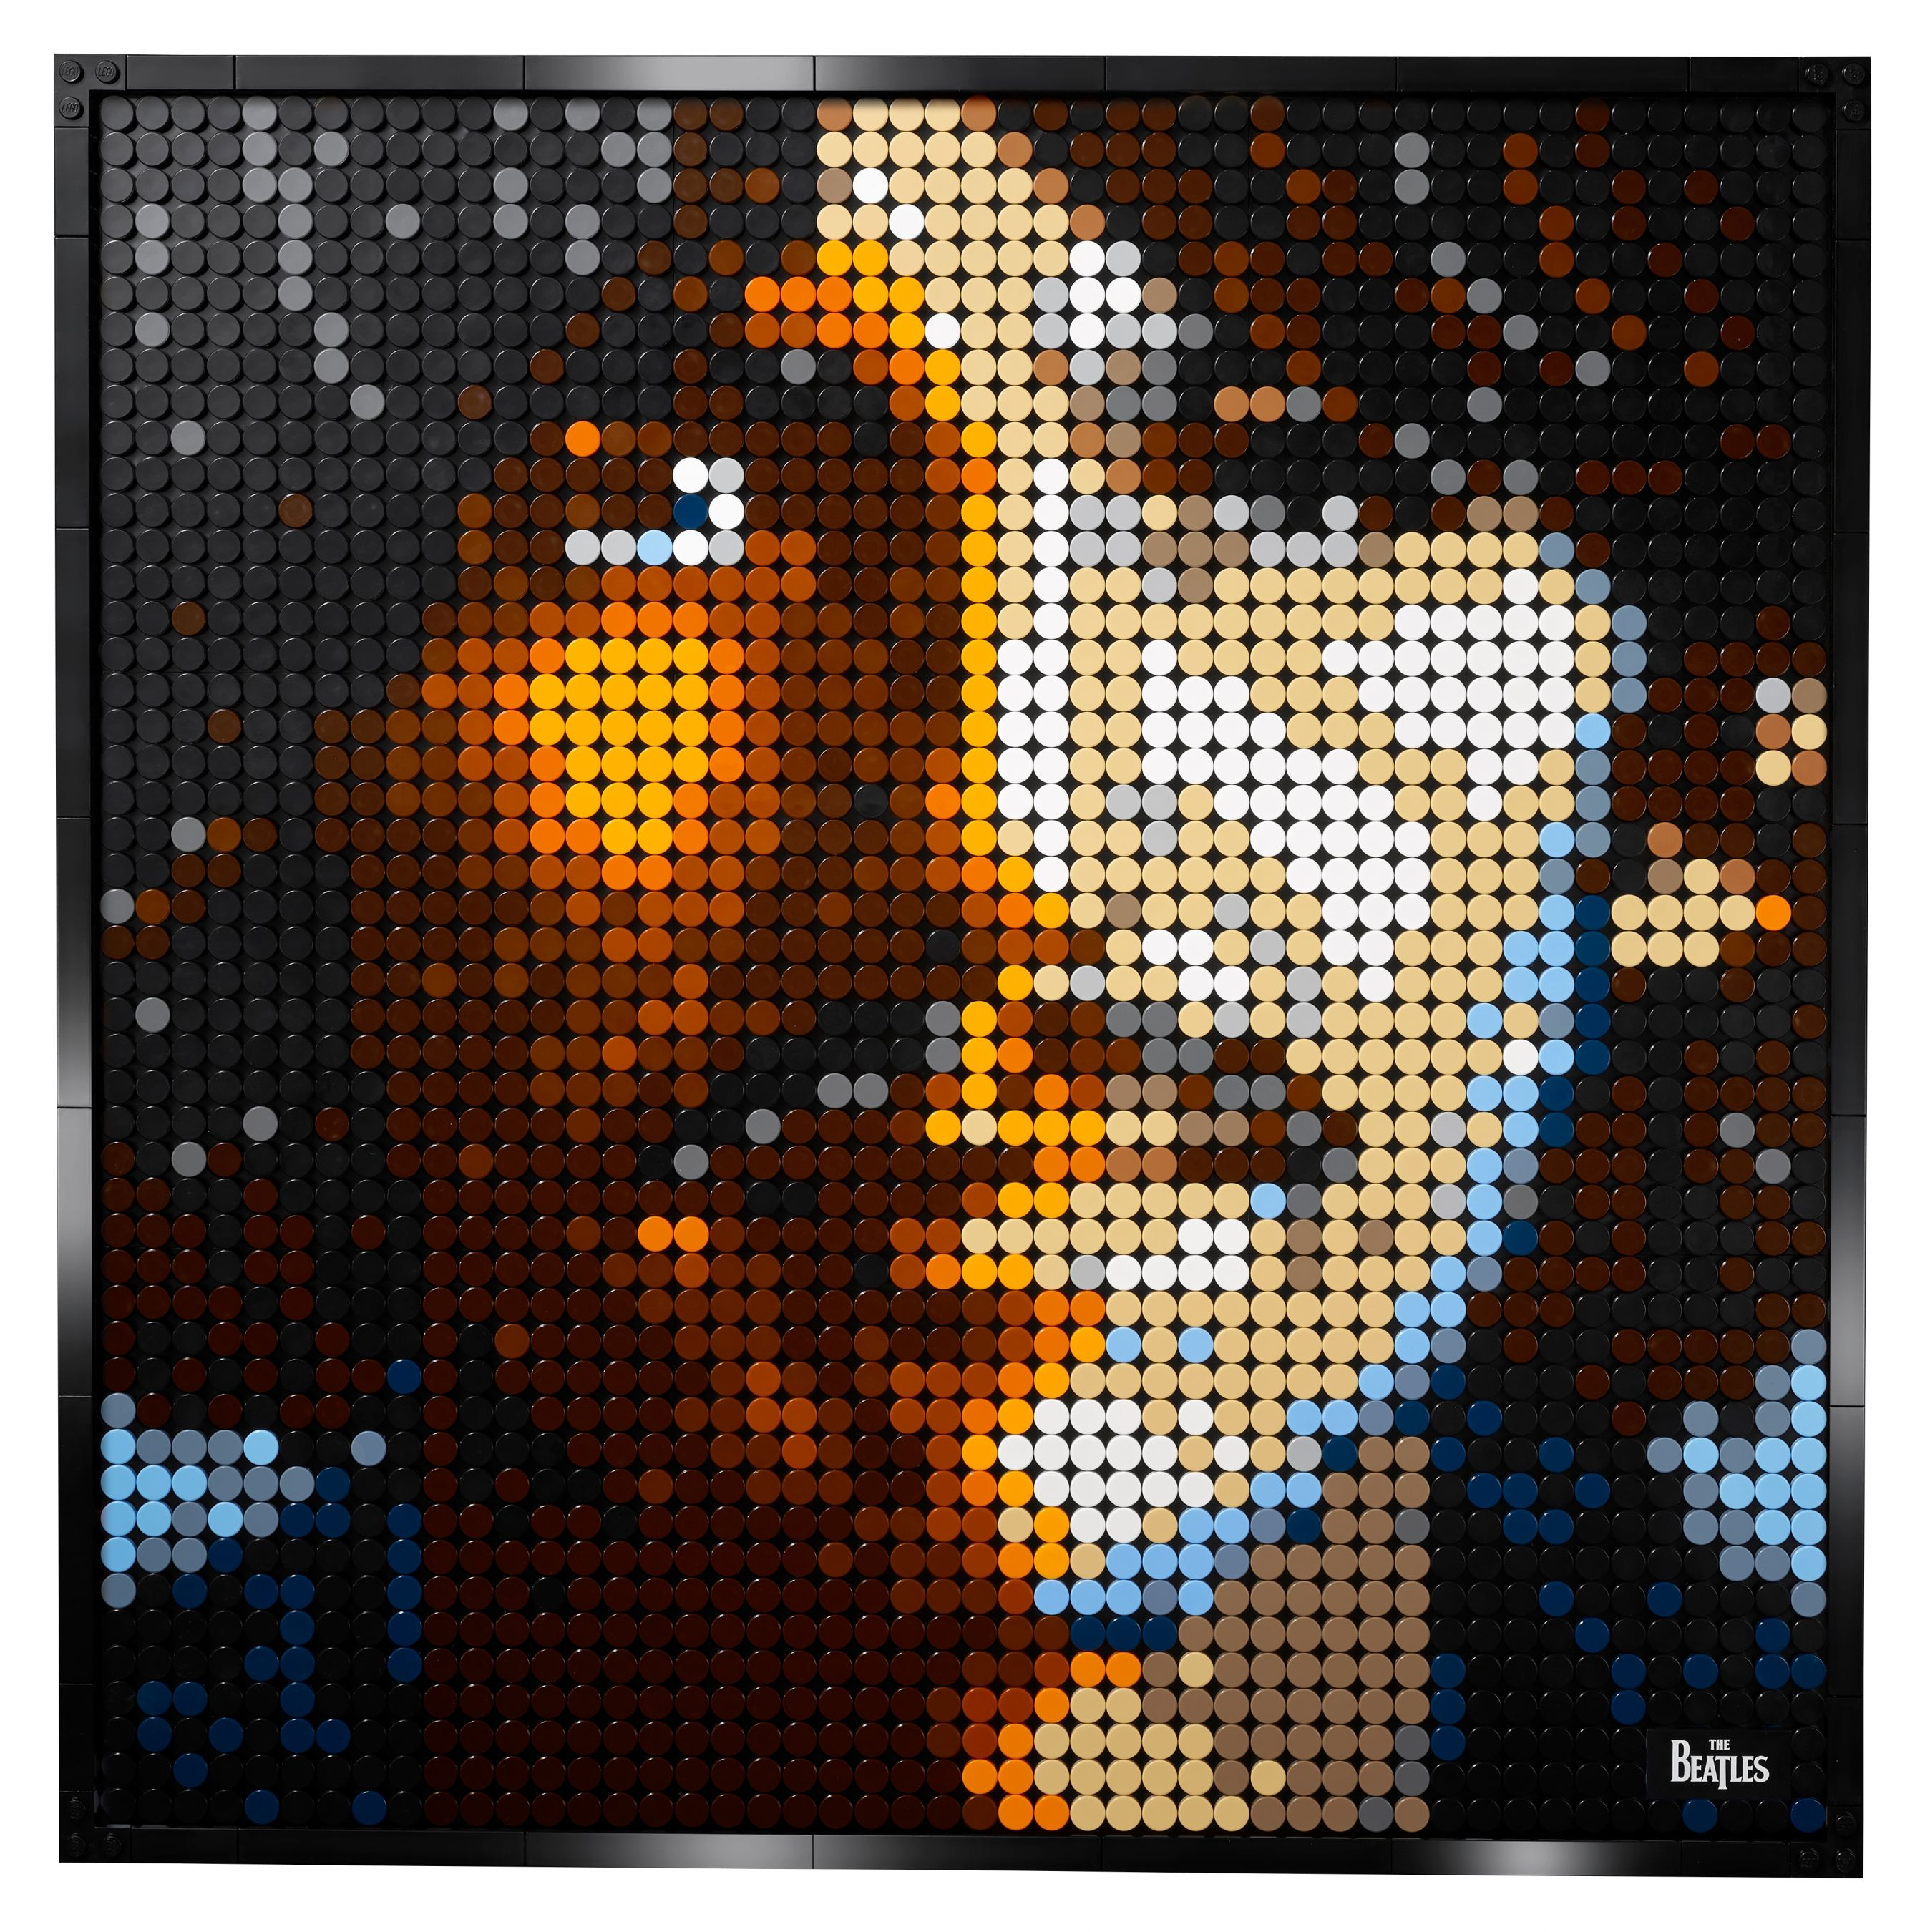 LEGO Art 31198 The Beatles LEGO_31198_alt6.jpg